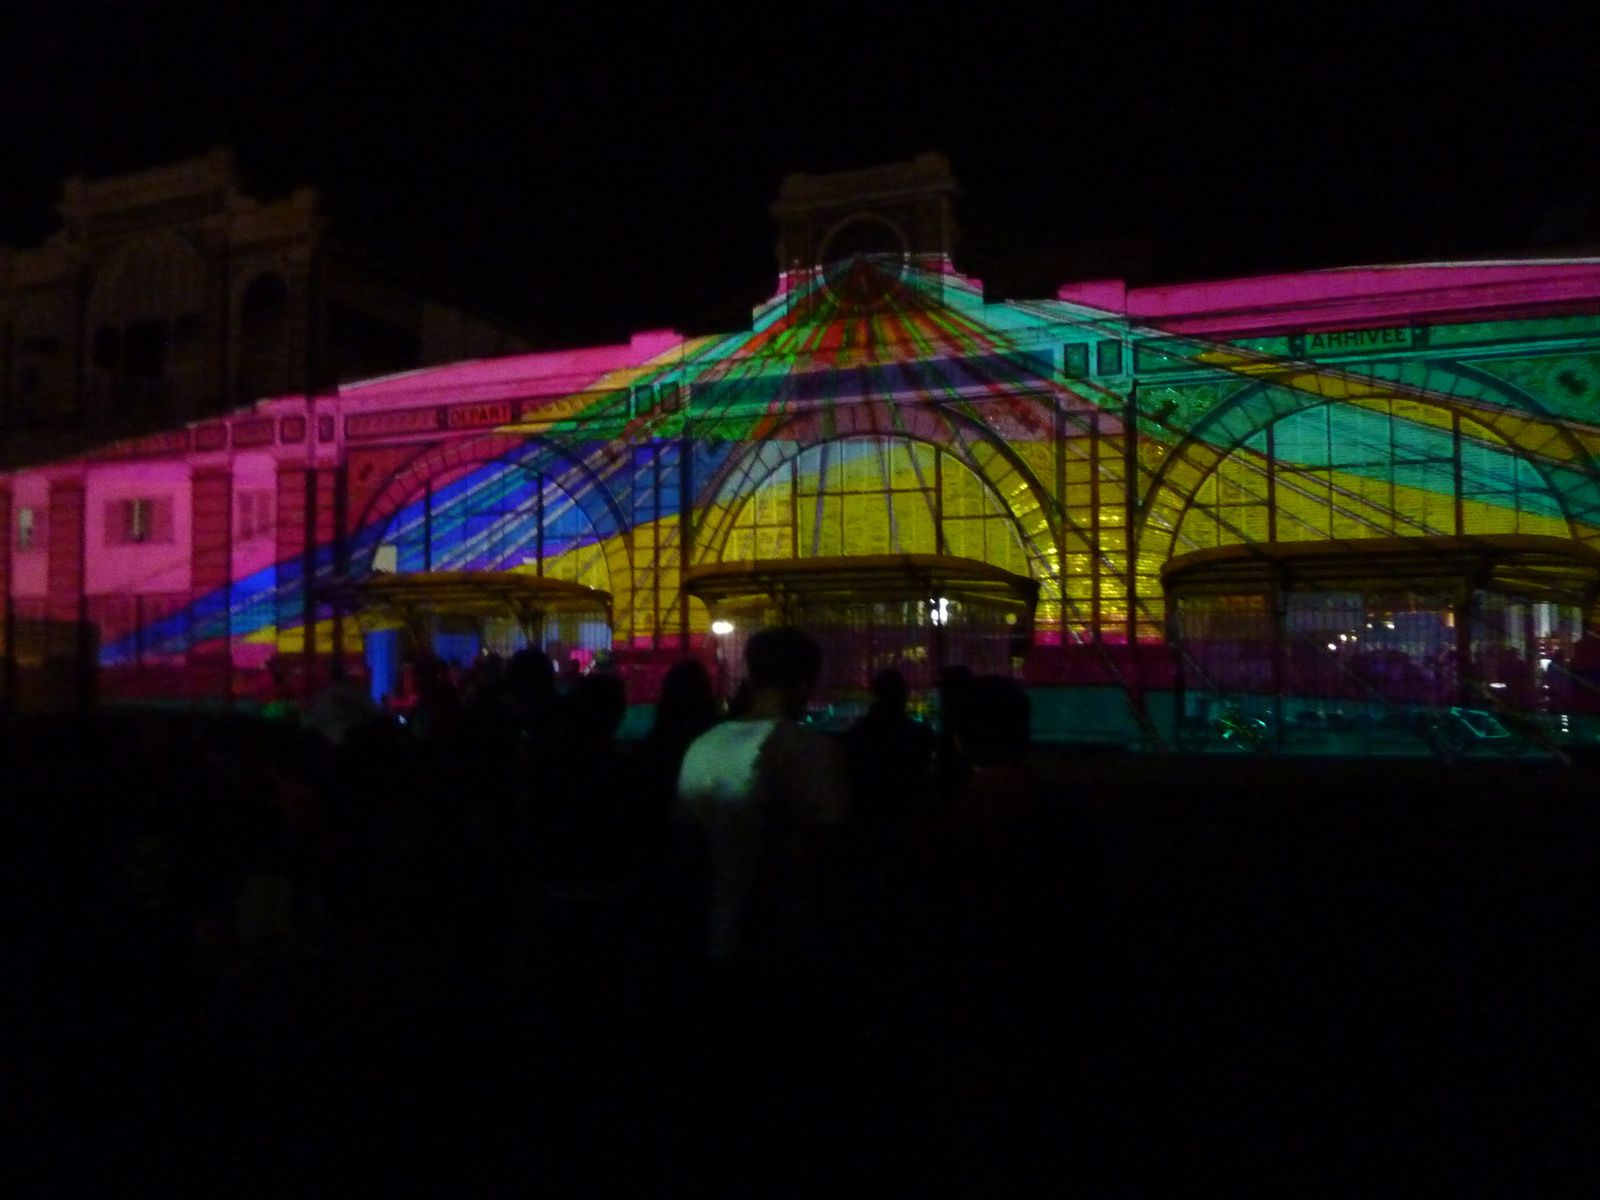 DAK'ART 2016: VIDEO-MAPPING A DAKAR-HAUPTBAHNHOF